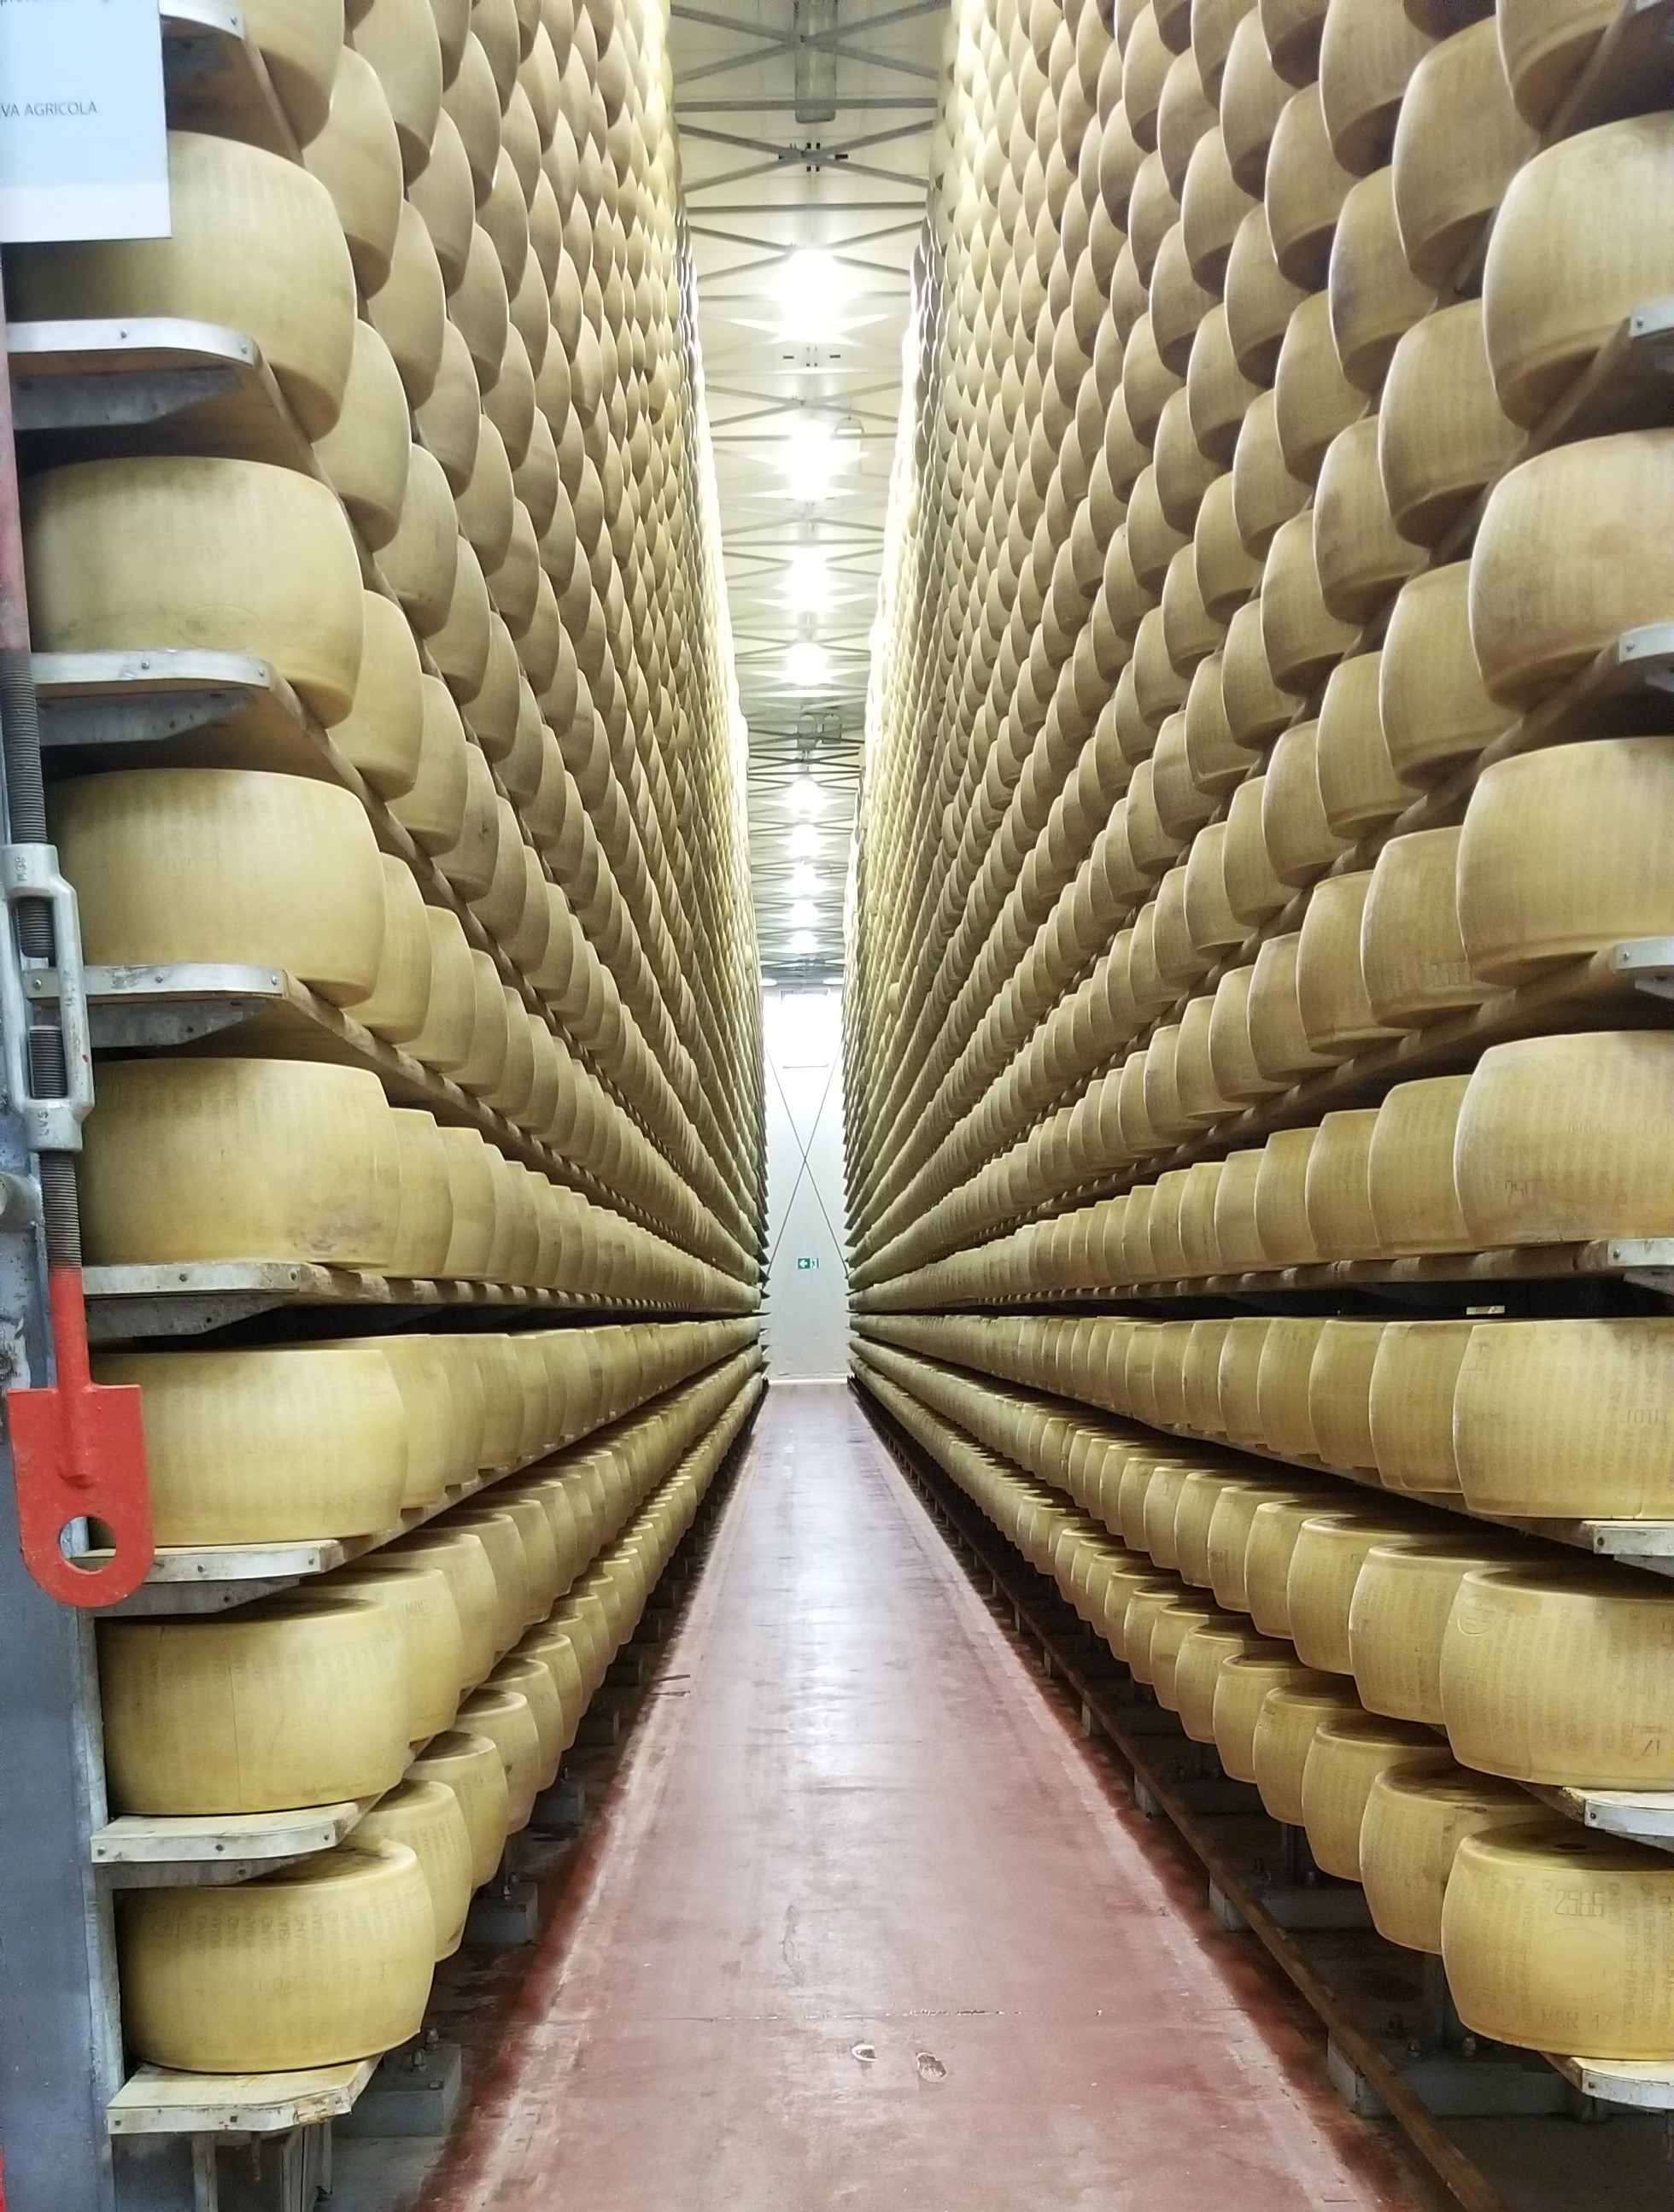 The 4 Madonne Caseificio has been rebuilt and is back to producing Parmigiano Reggiano, but imagine hundreds of thousands of these 80-pound wheels crashing to the ground.